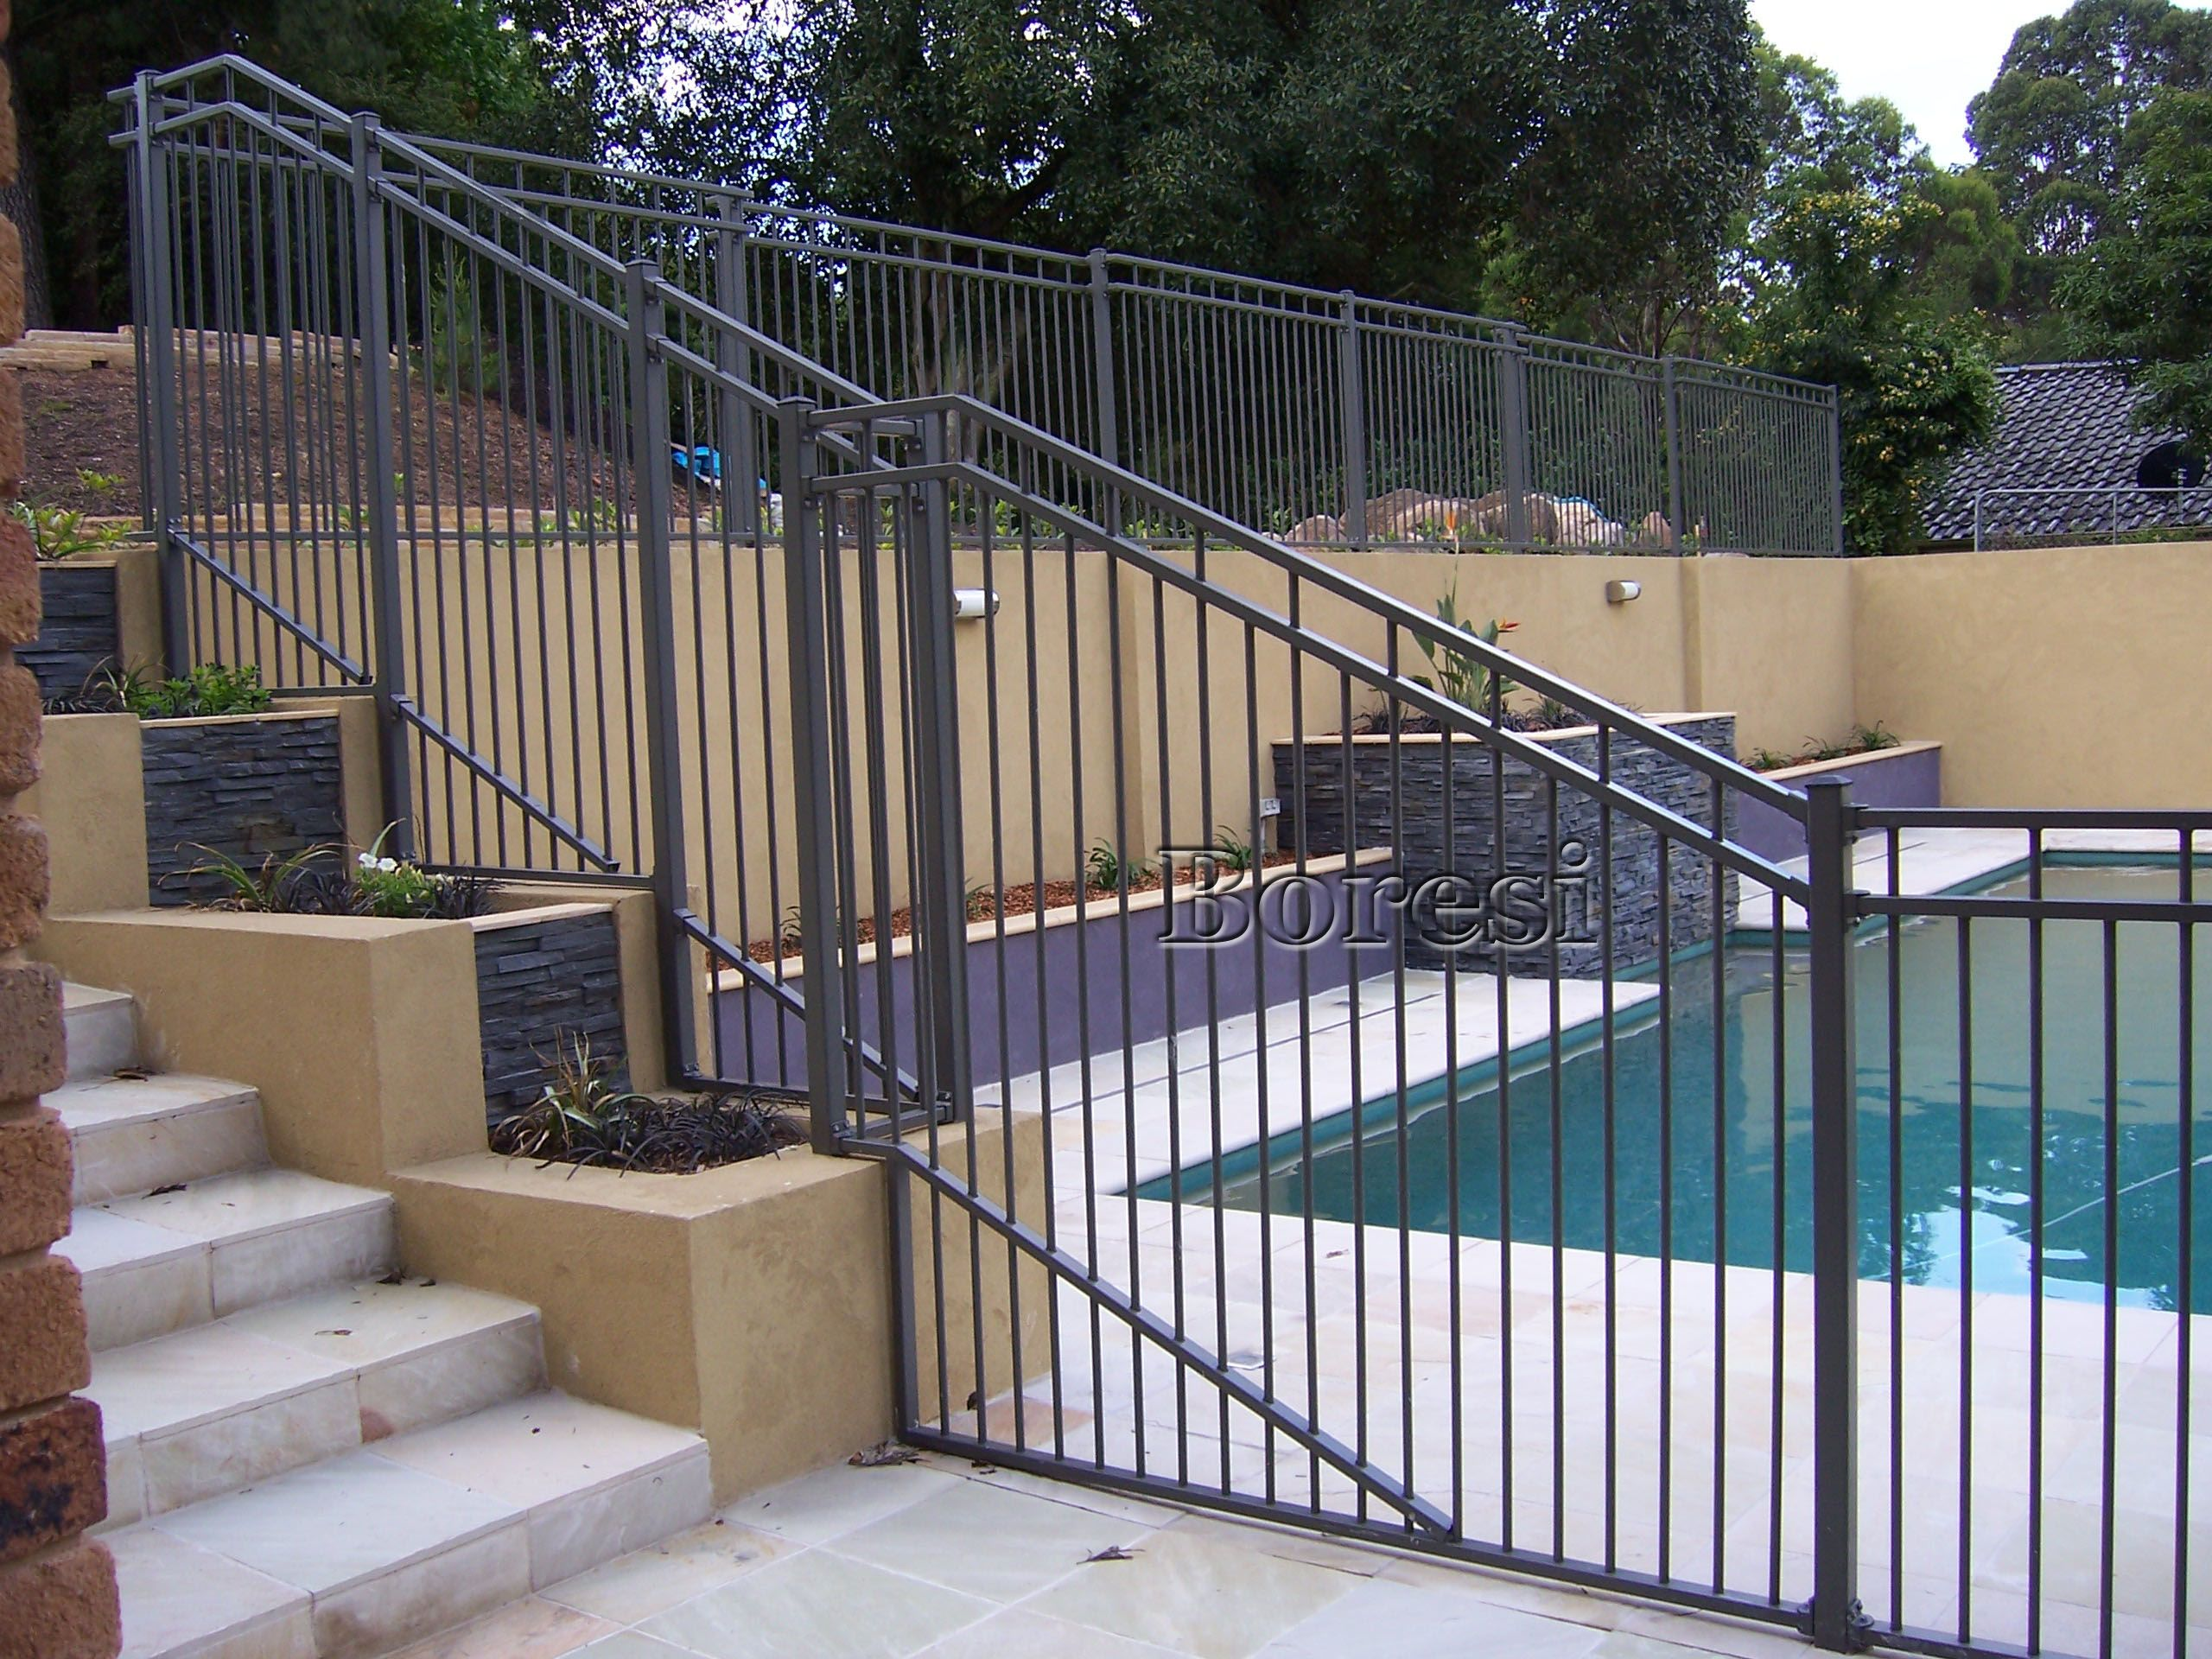 Pool fencing ideas pictures - 18 Stylish And Safety Pool Fence Ideas For Your Homes